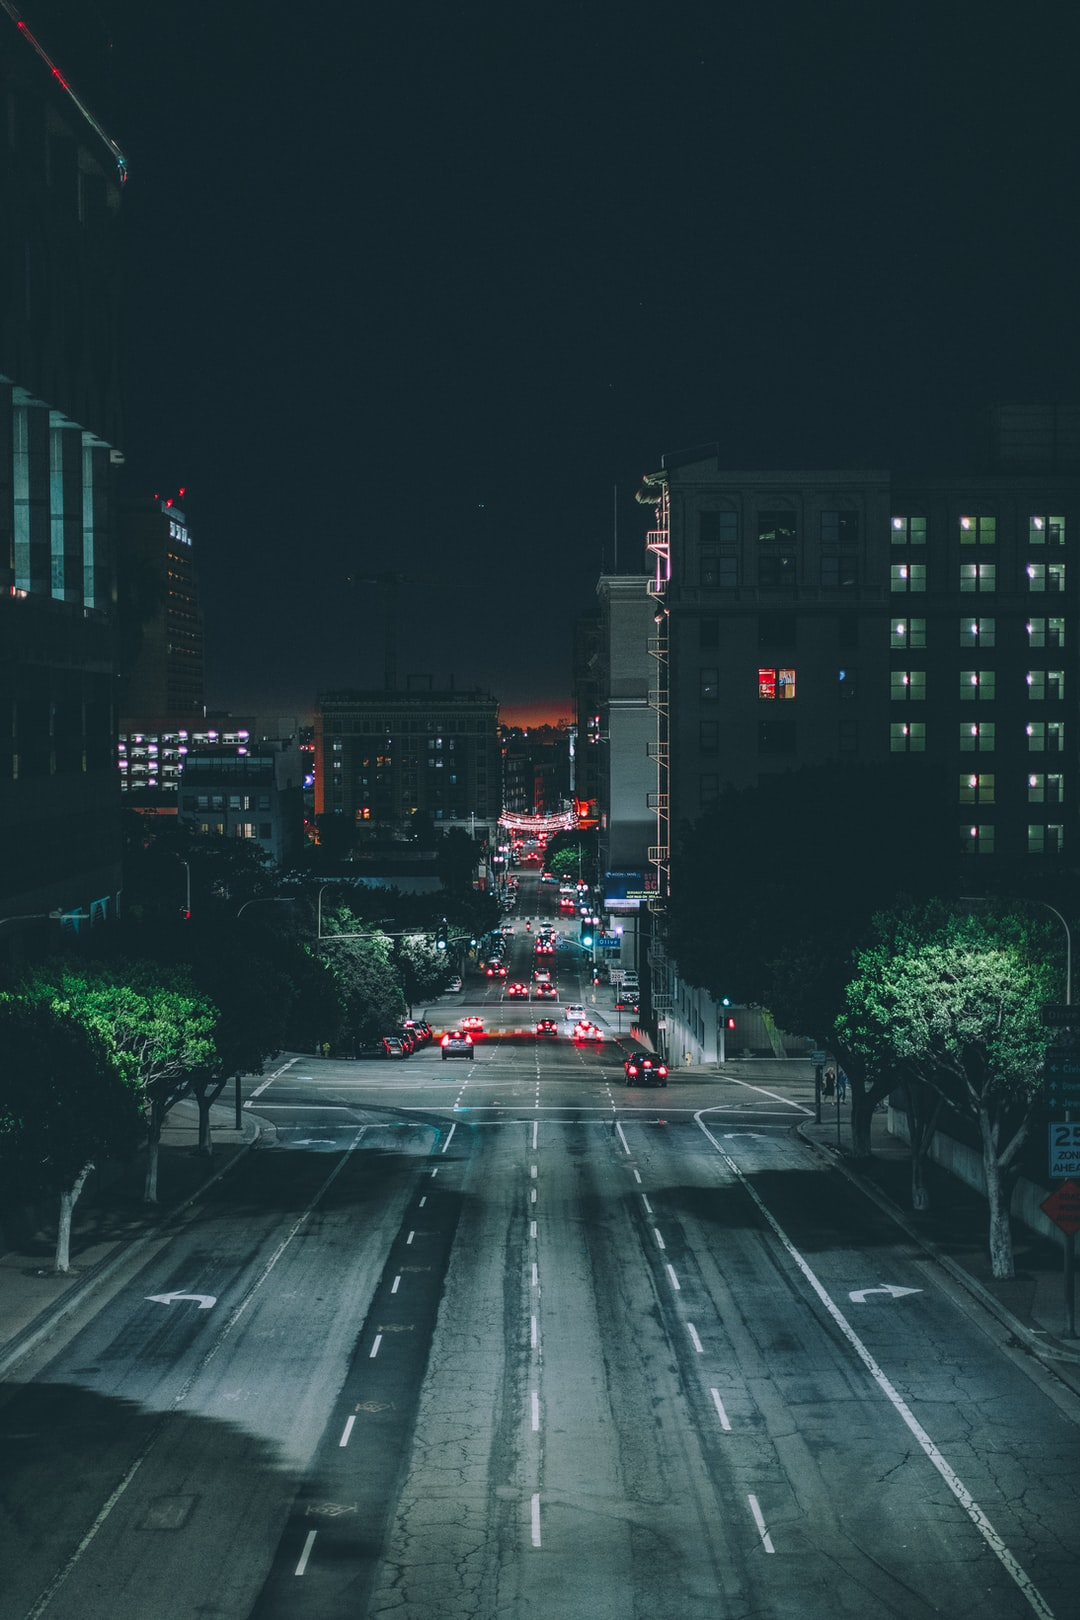 100 Night Street Pictures Download Free Images On Unsplash